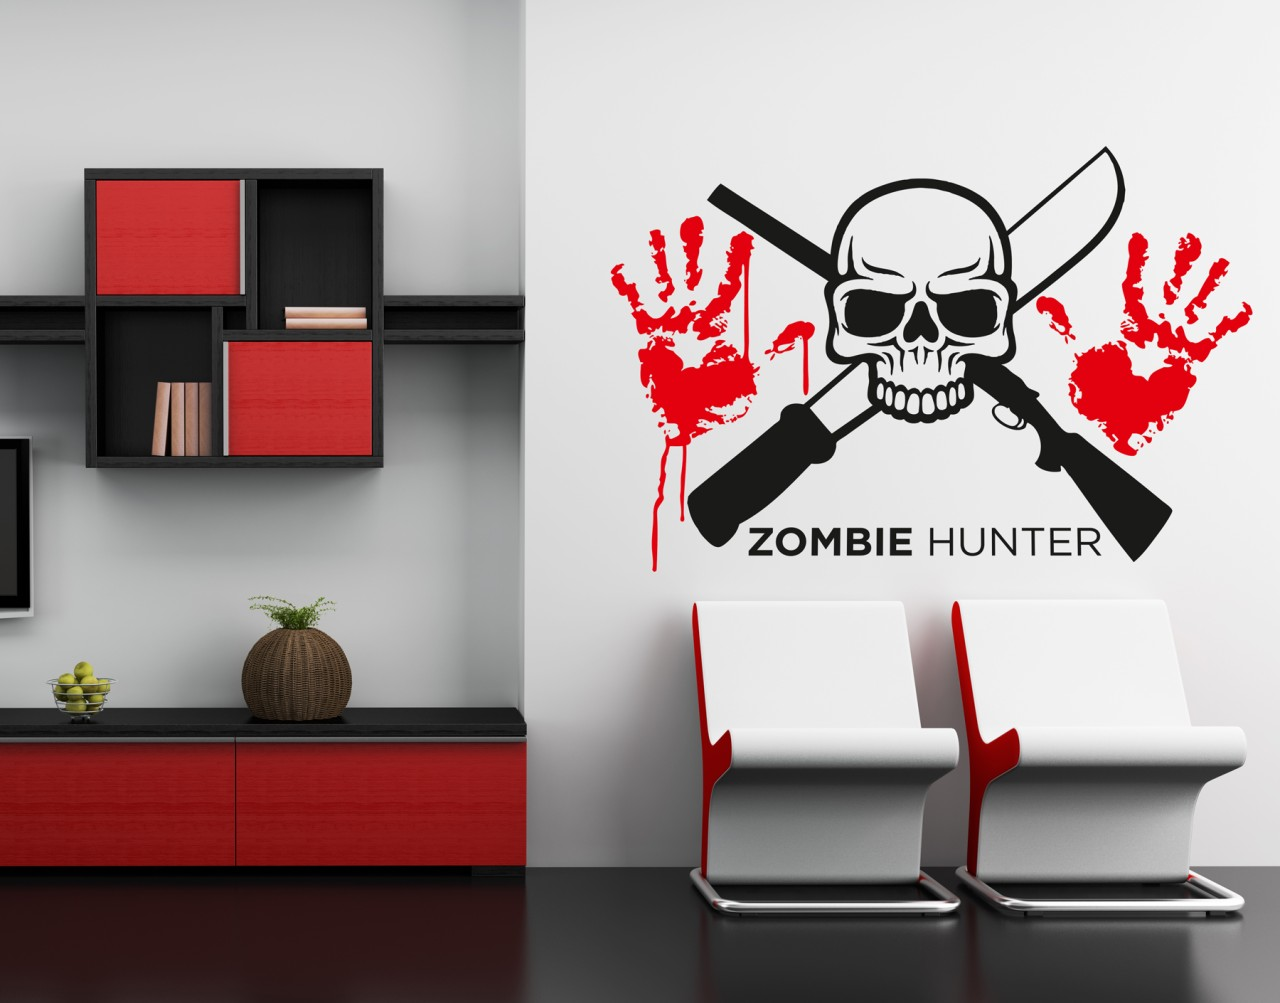 Wall art sticker transfer bedroom teenage rock metal alternative zombie hunter ebay - Teenage wall art ideas ...